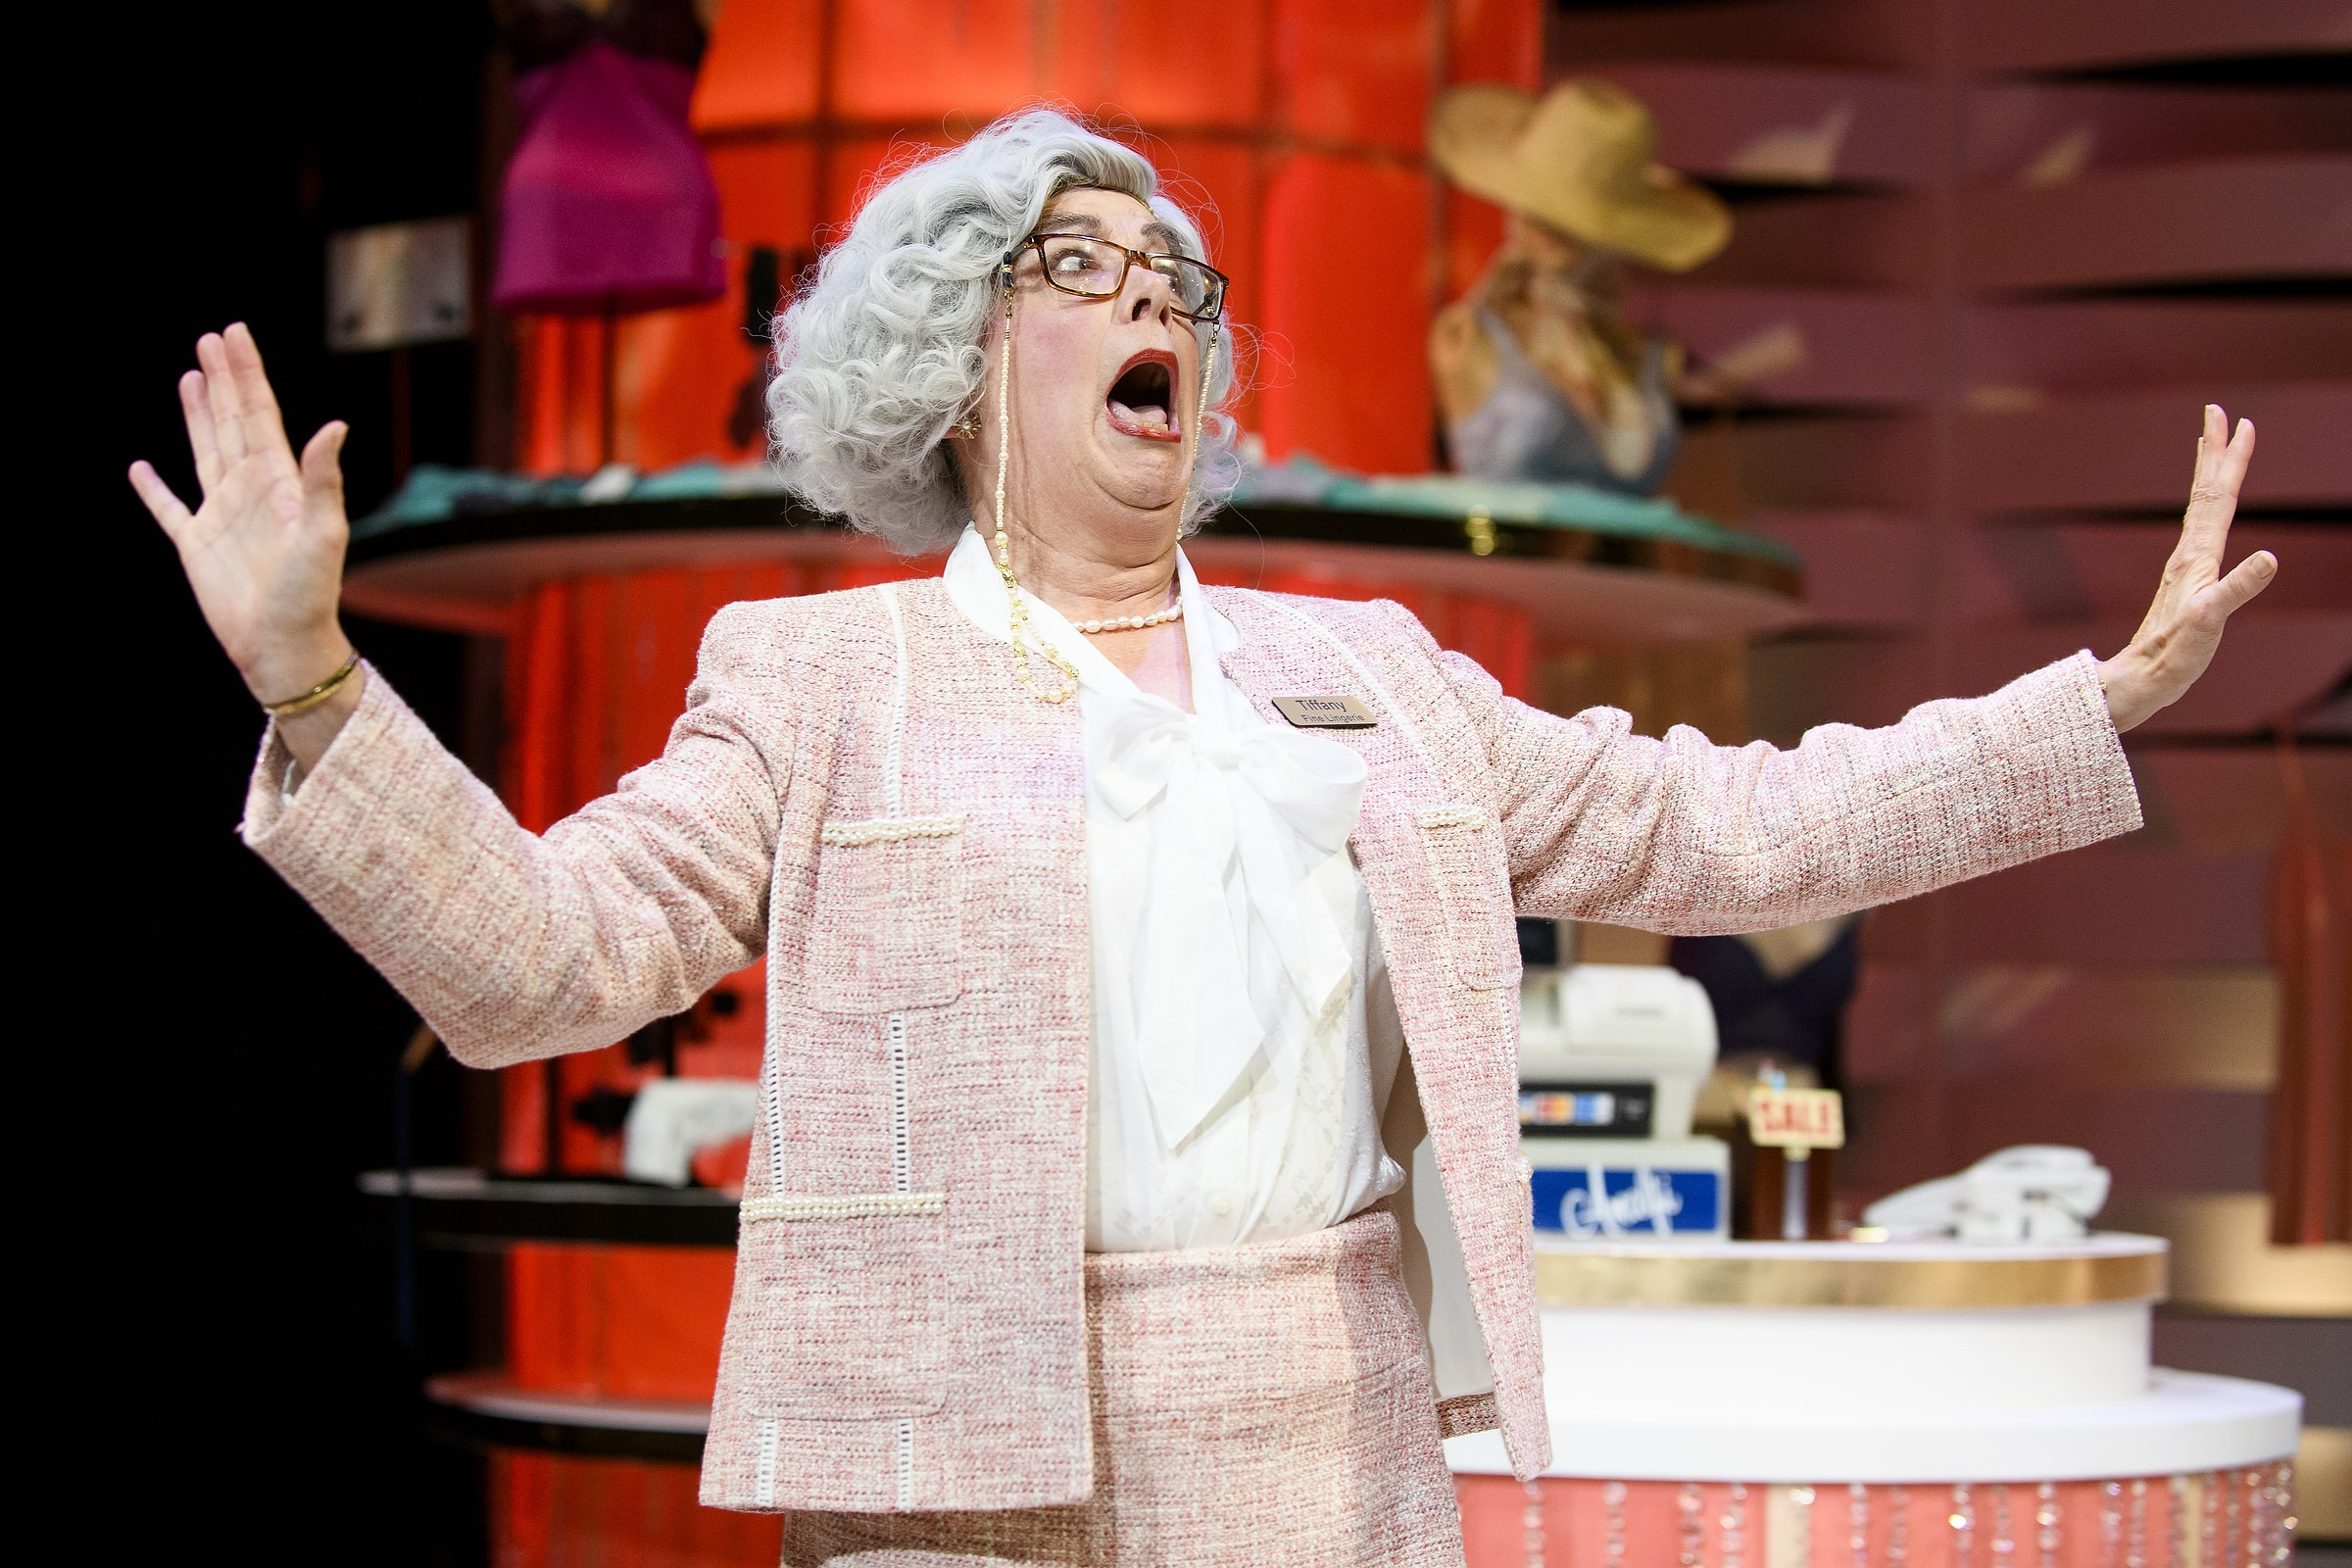 An actress playing a sales woman yells comedically in a play